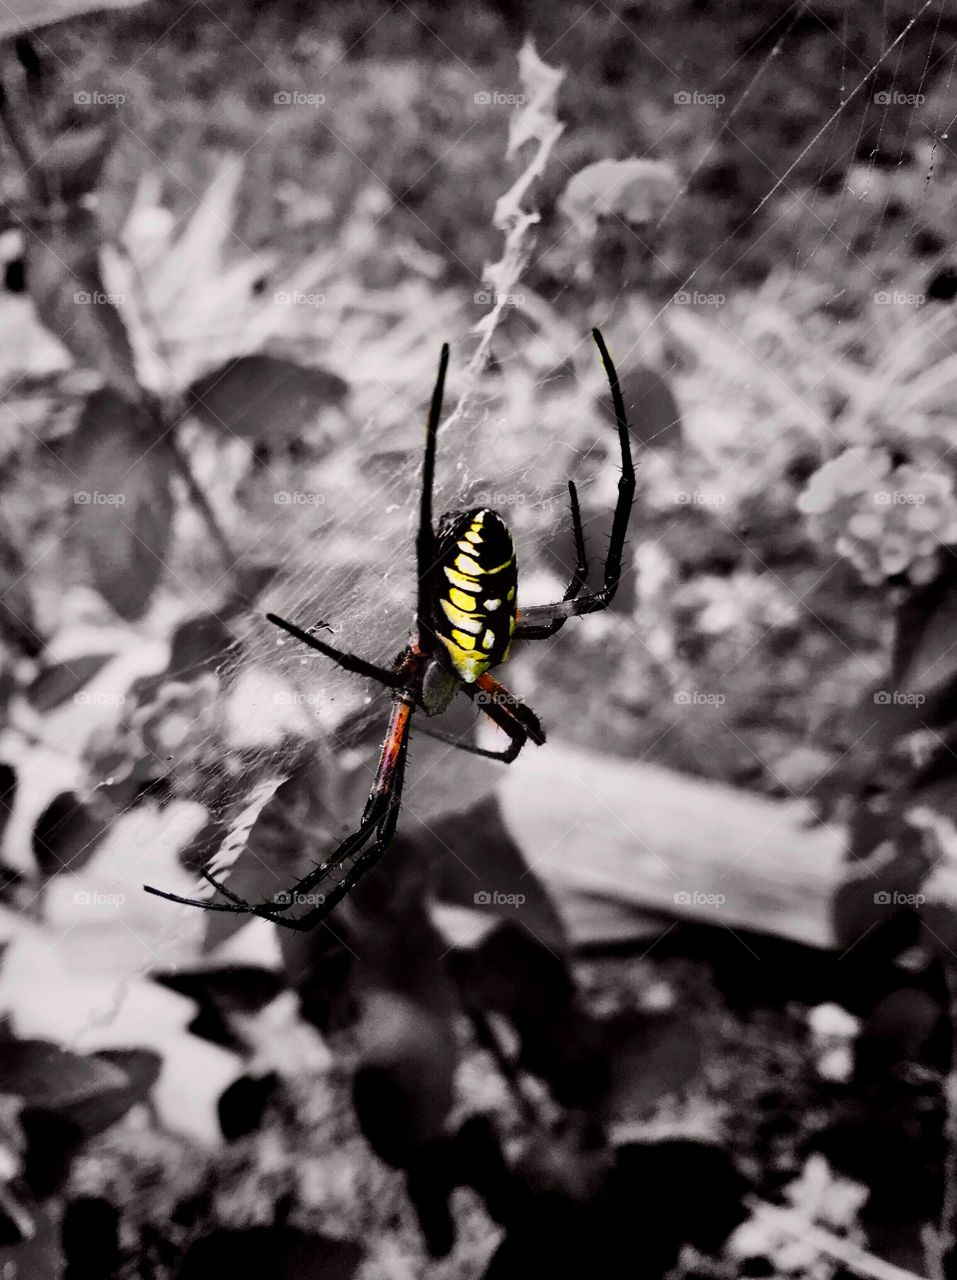 Color pop or color splash of a black and yellow garden spider or writing spider resting on her web in the flower garden